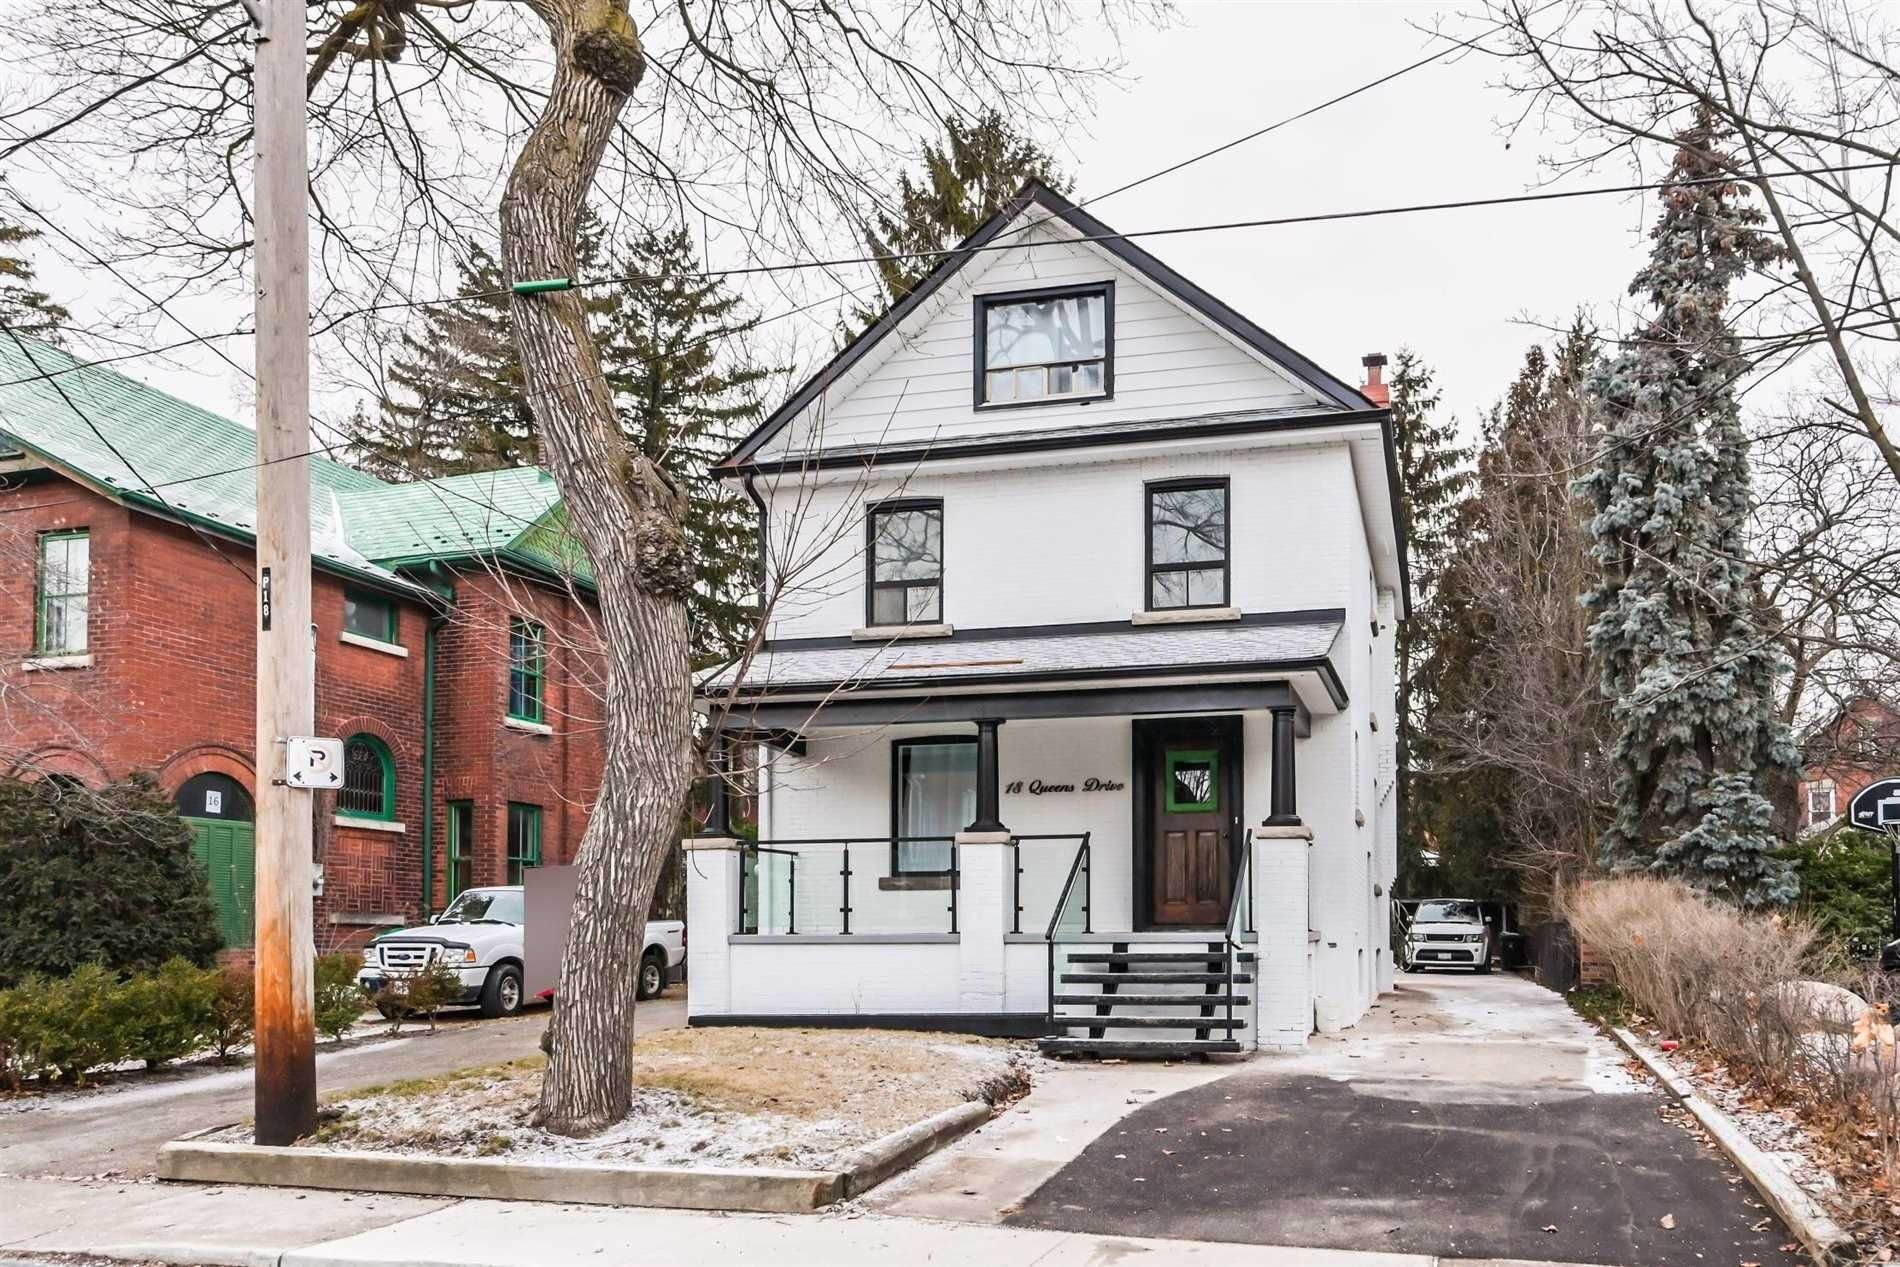 Main Photo: 18 Queens Drive in Toronto: Weston Freehold for sale (Toronto W04)  : MLS®# W5091899